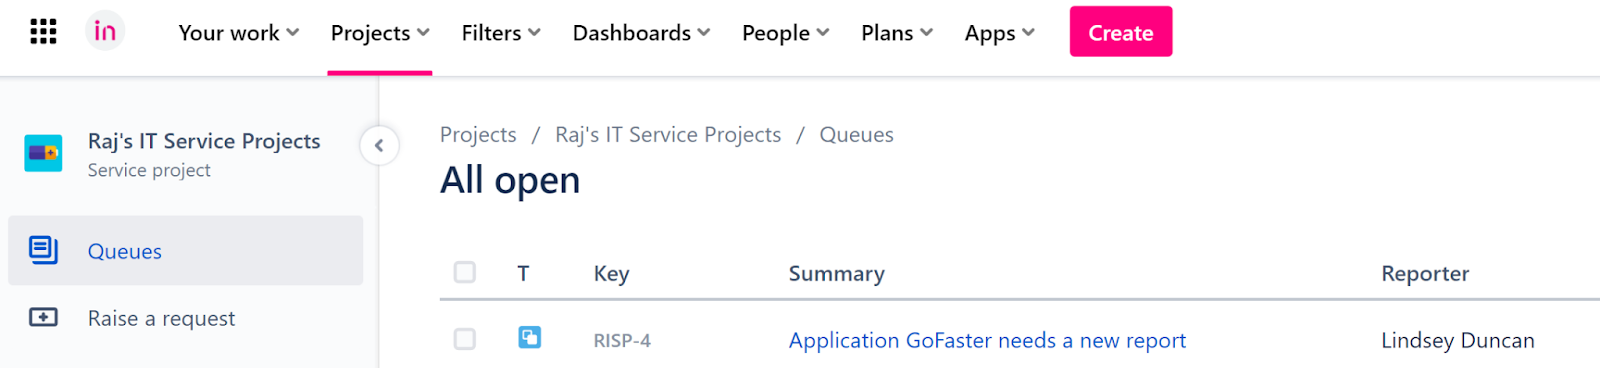 Responding to customer queries in Jira Service Management